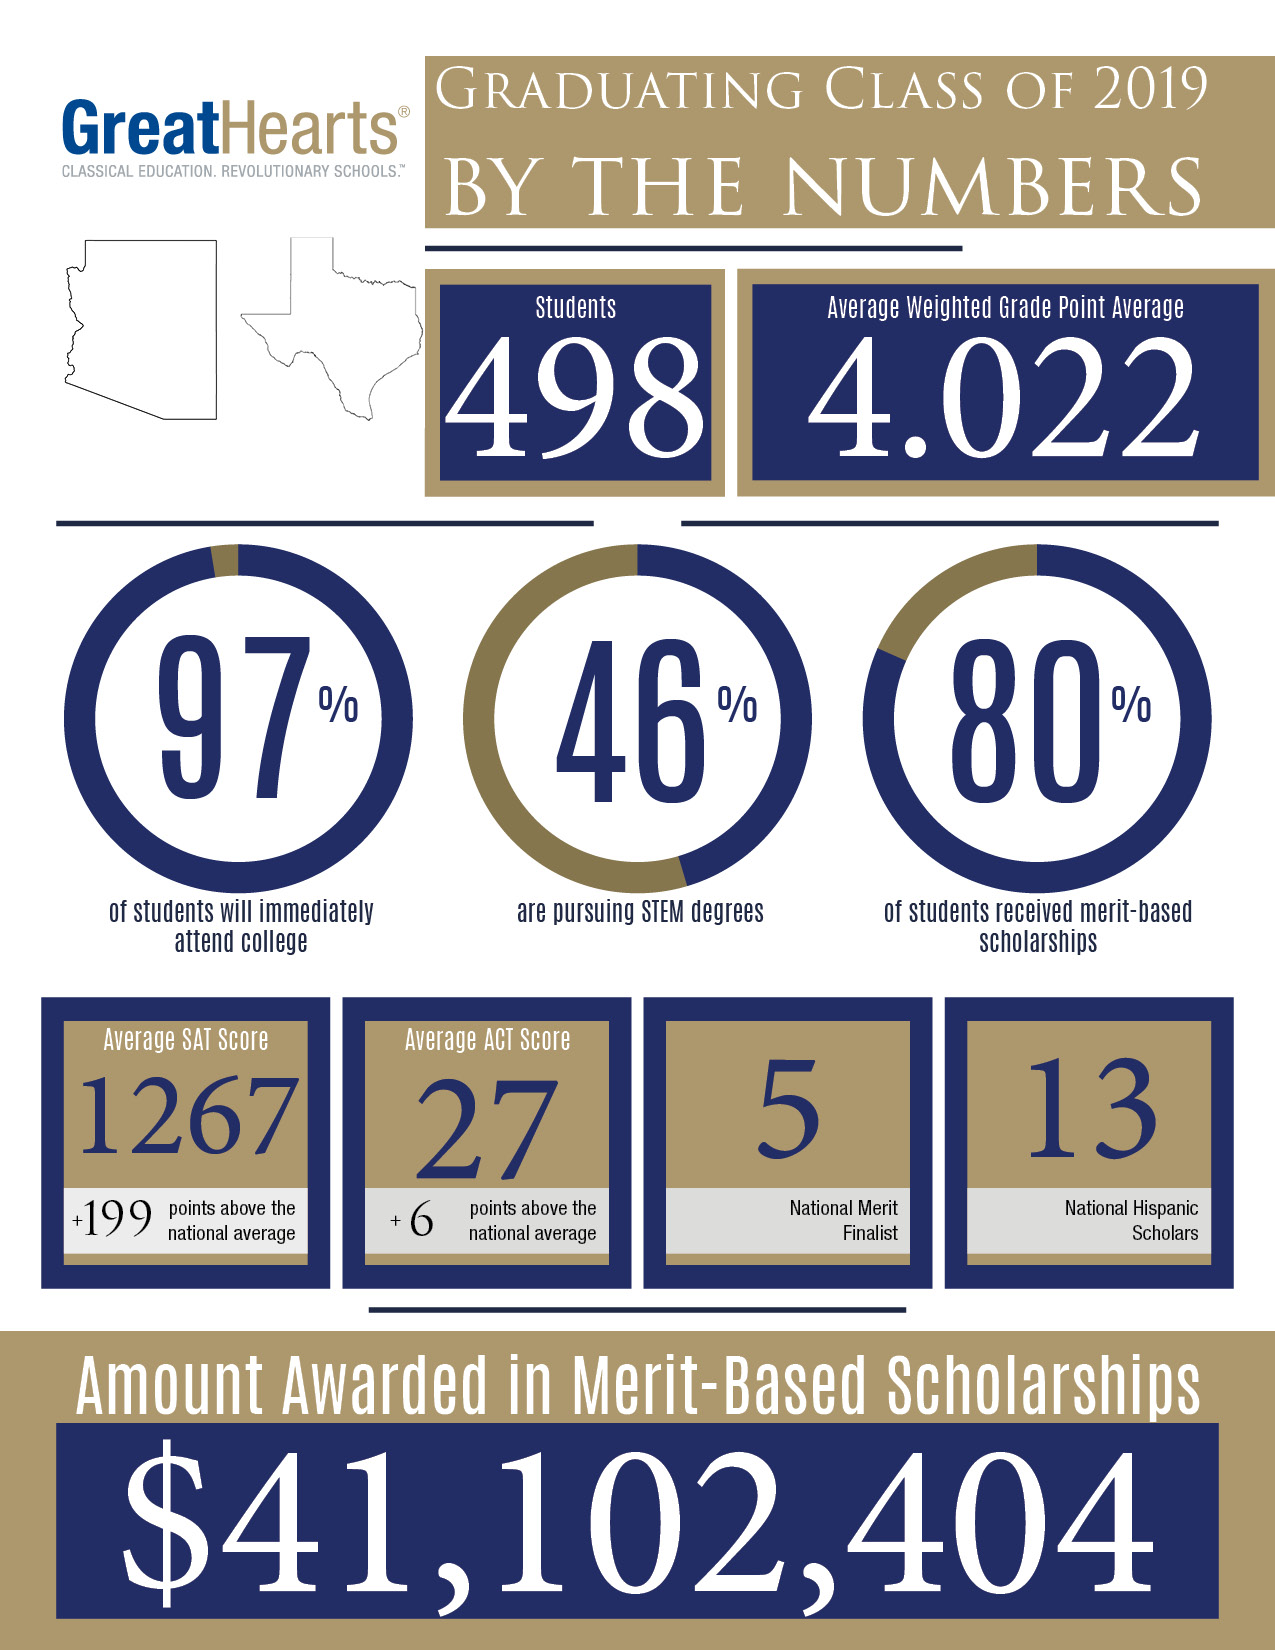 Class of 2019 earns 41 million in scholarships